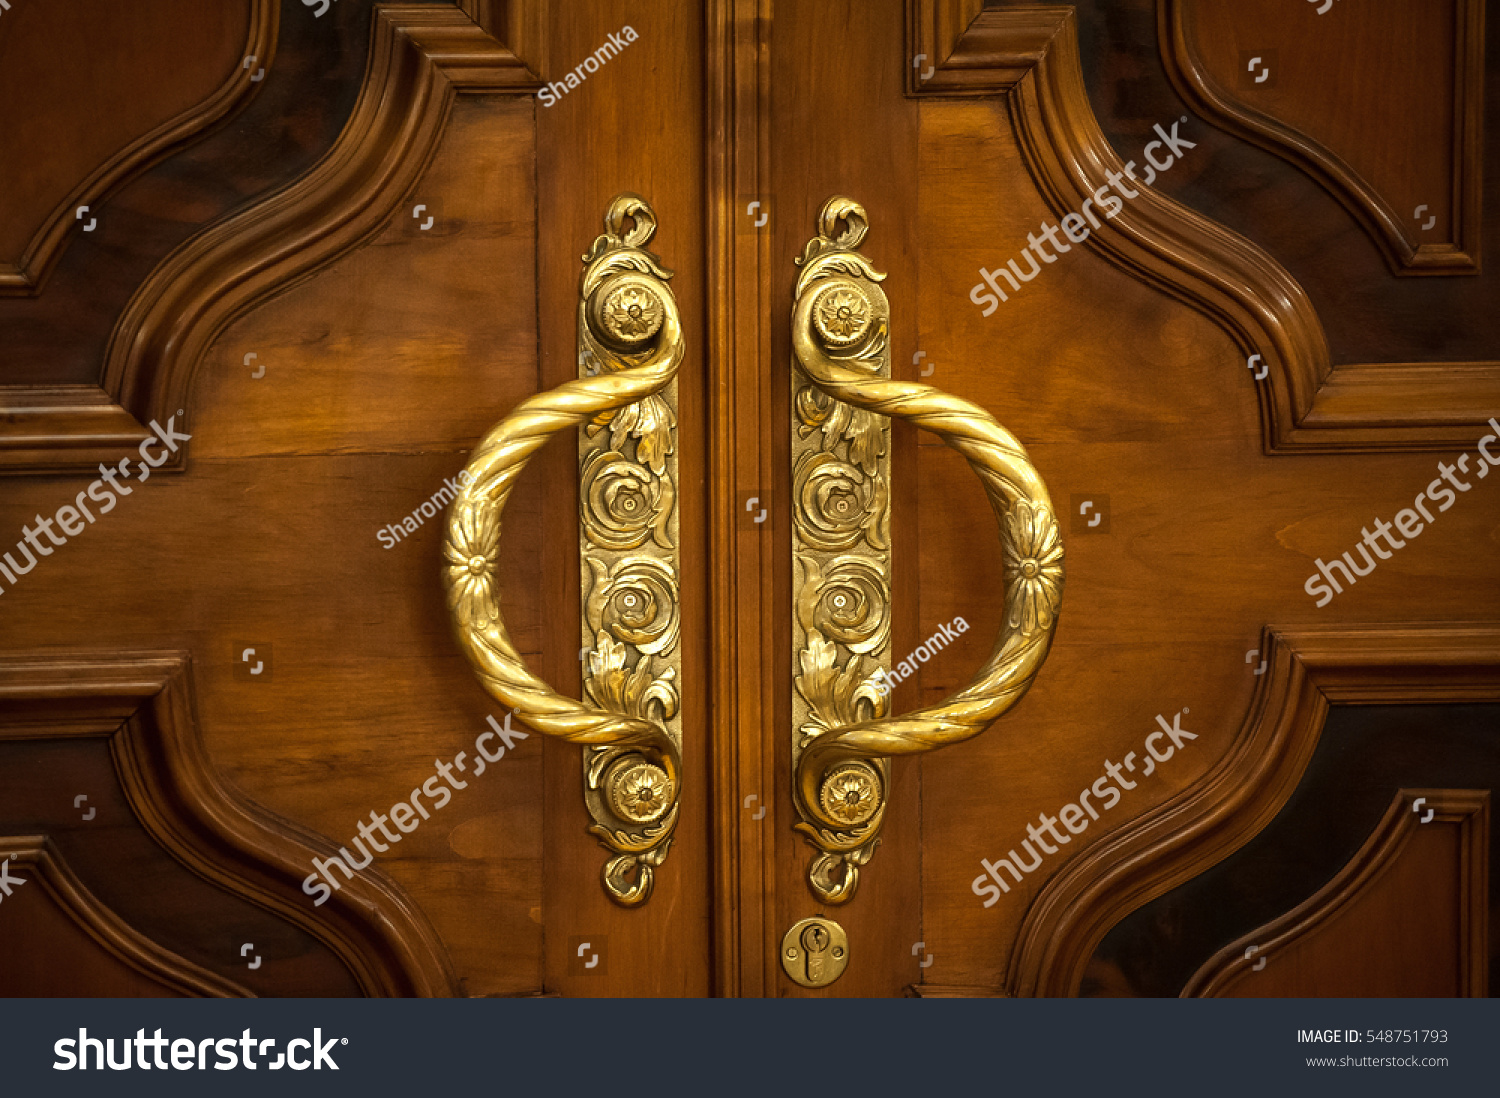 Door handles with an old double door. Golden Handle Door Entrance. Luxury  gold handle - Door Handles Old Double Door Golden Stock Photo 548751793